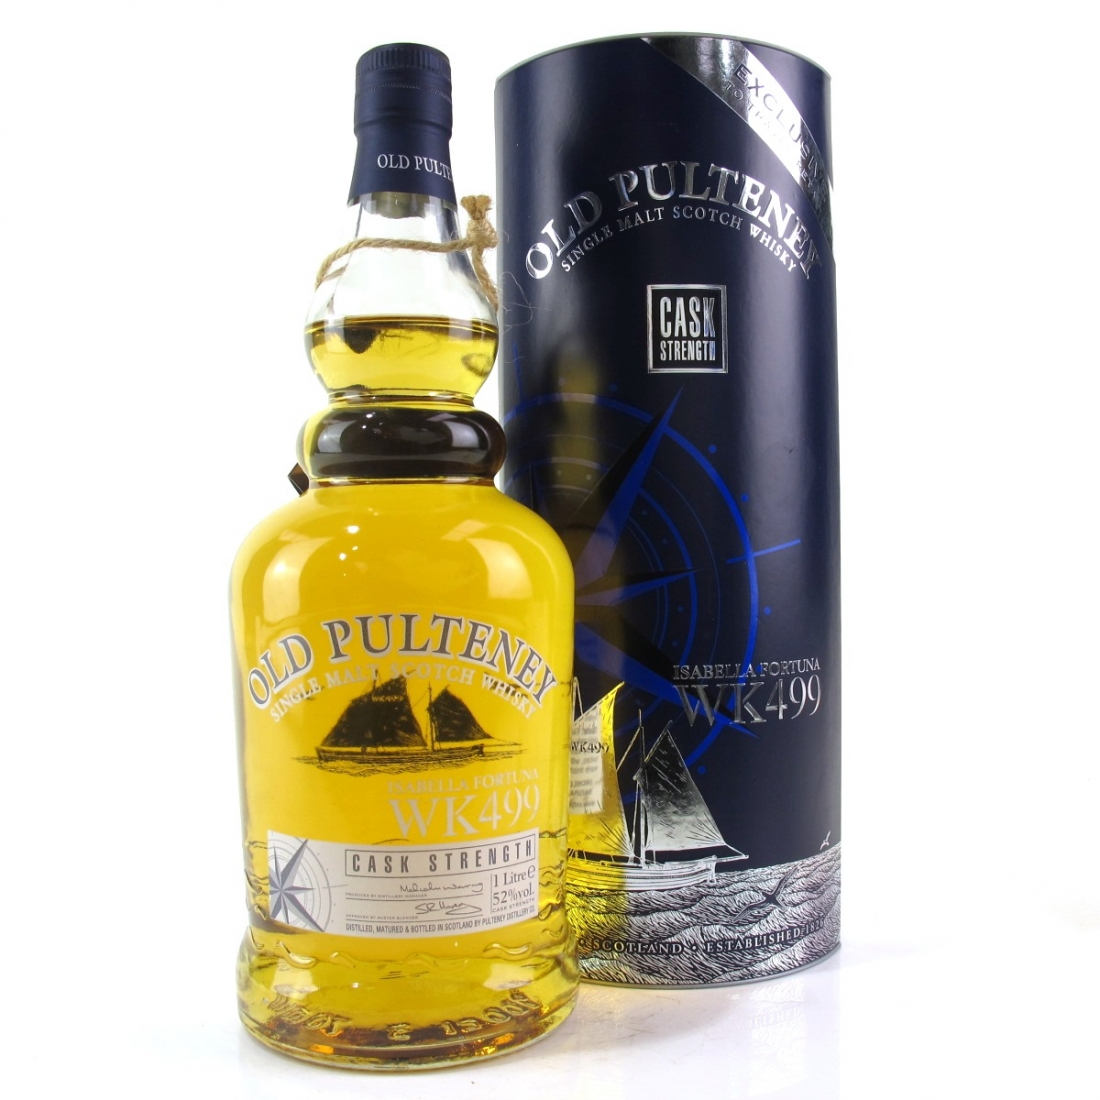 Old Pulteney WK499 Isabella Fortuna First Release 1 Litre